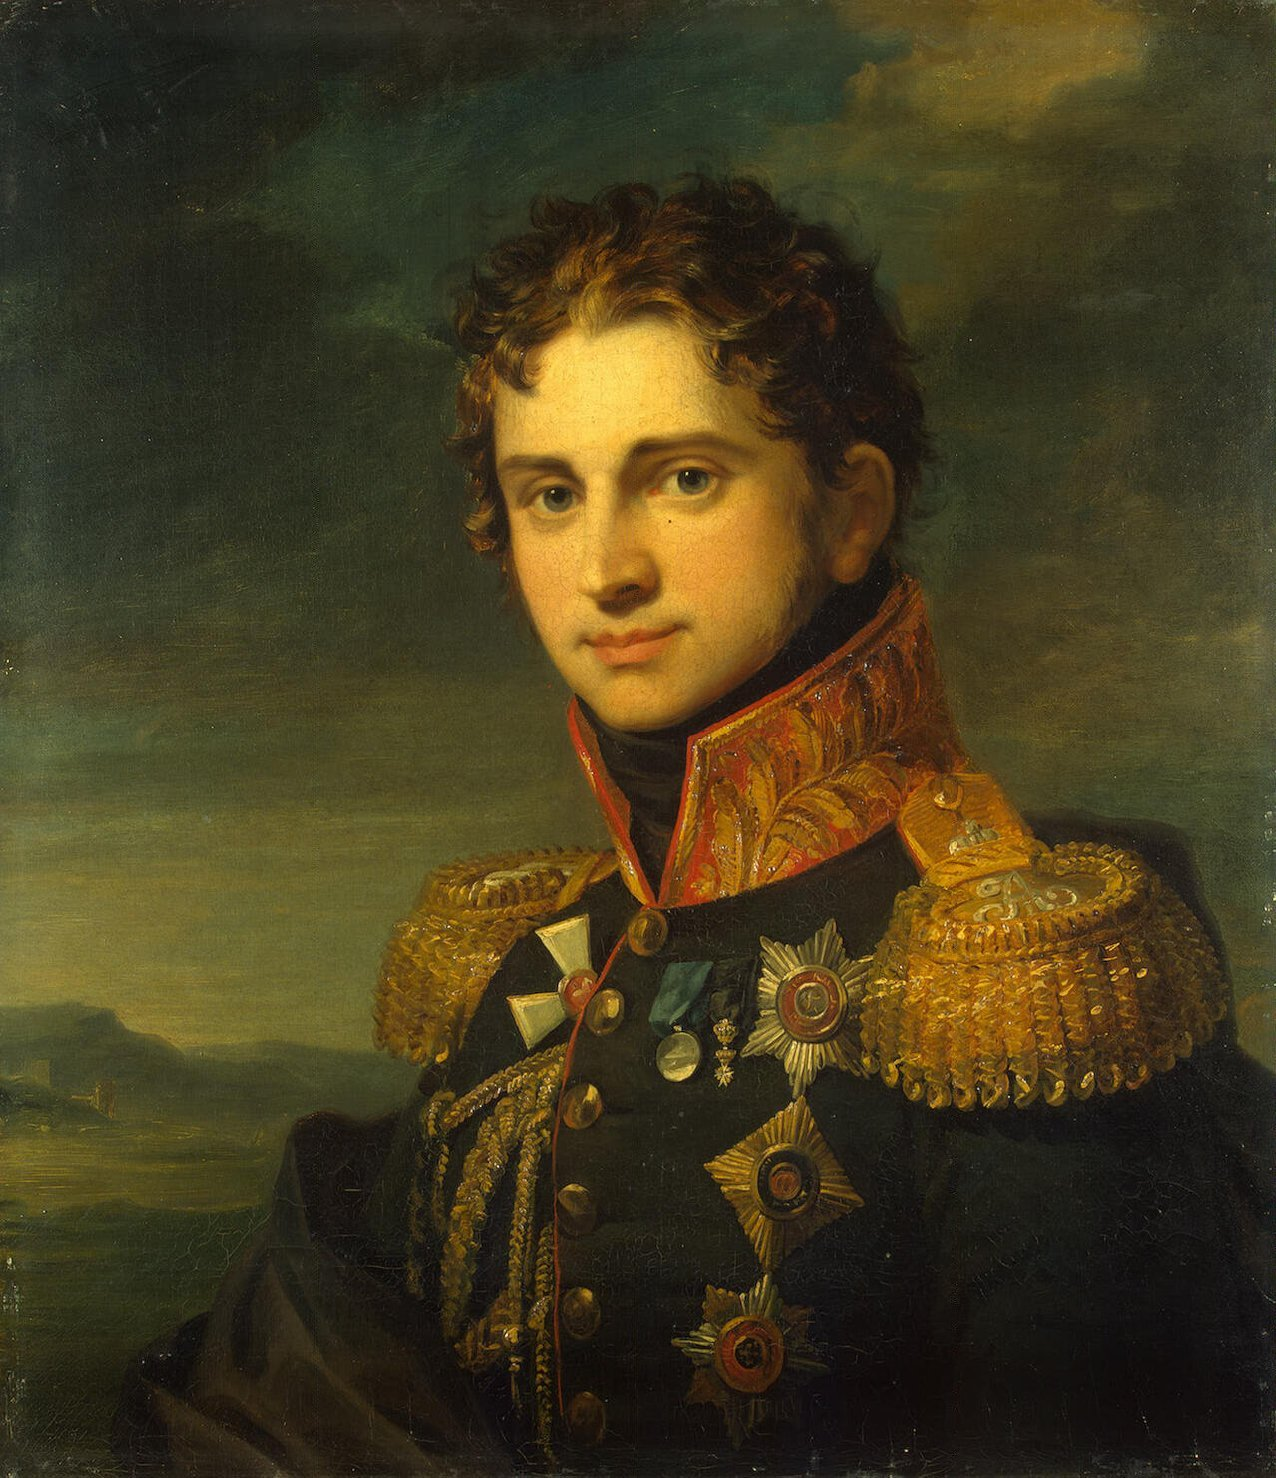 Count Pavel Alexandrovich Stroganov (June 7, 1774 – June 10, 1817) - Painting by George Dawe